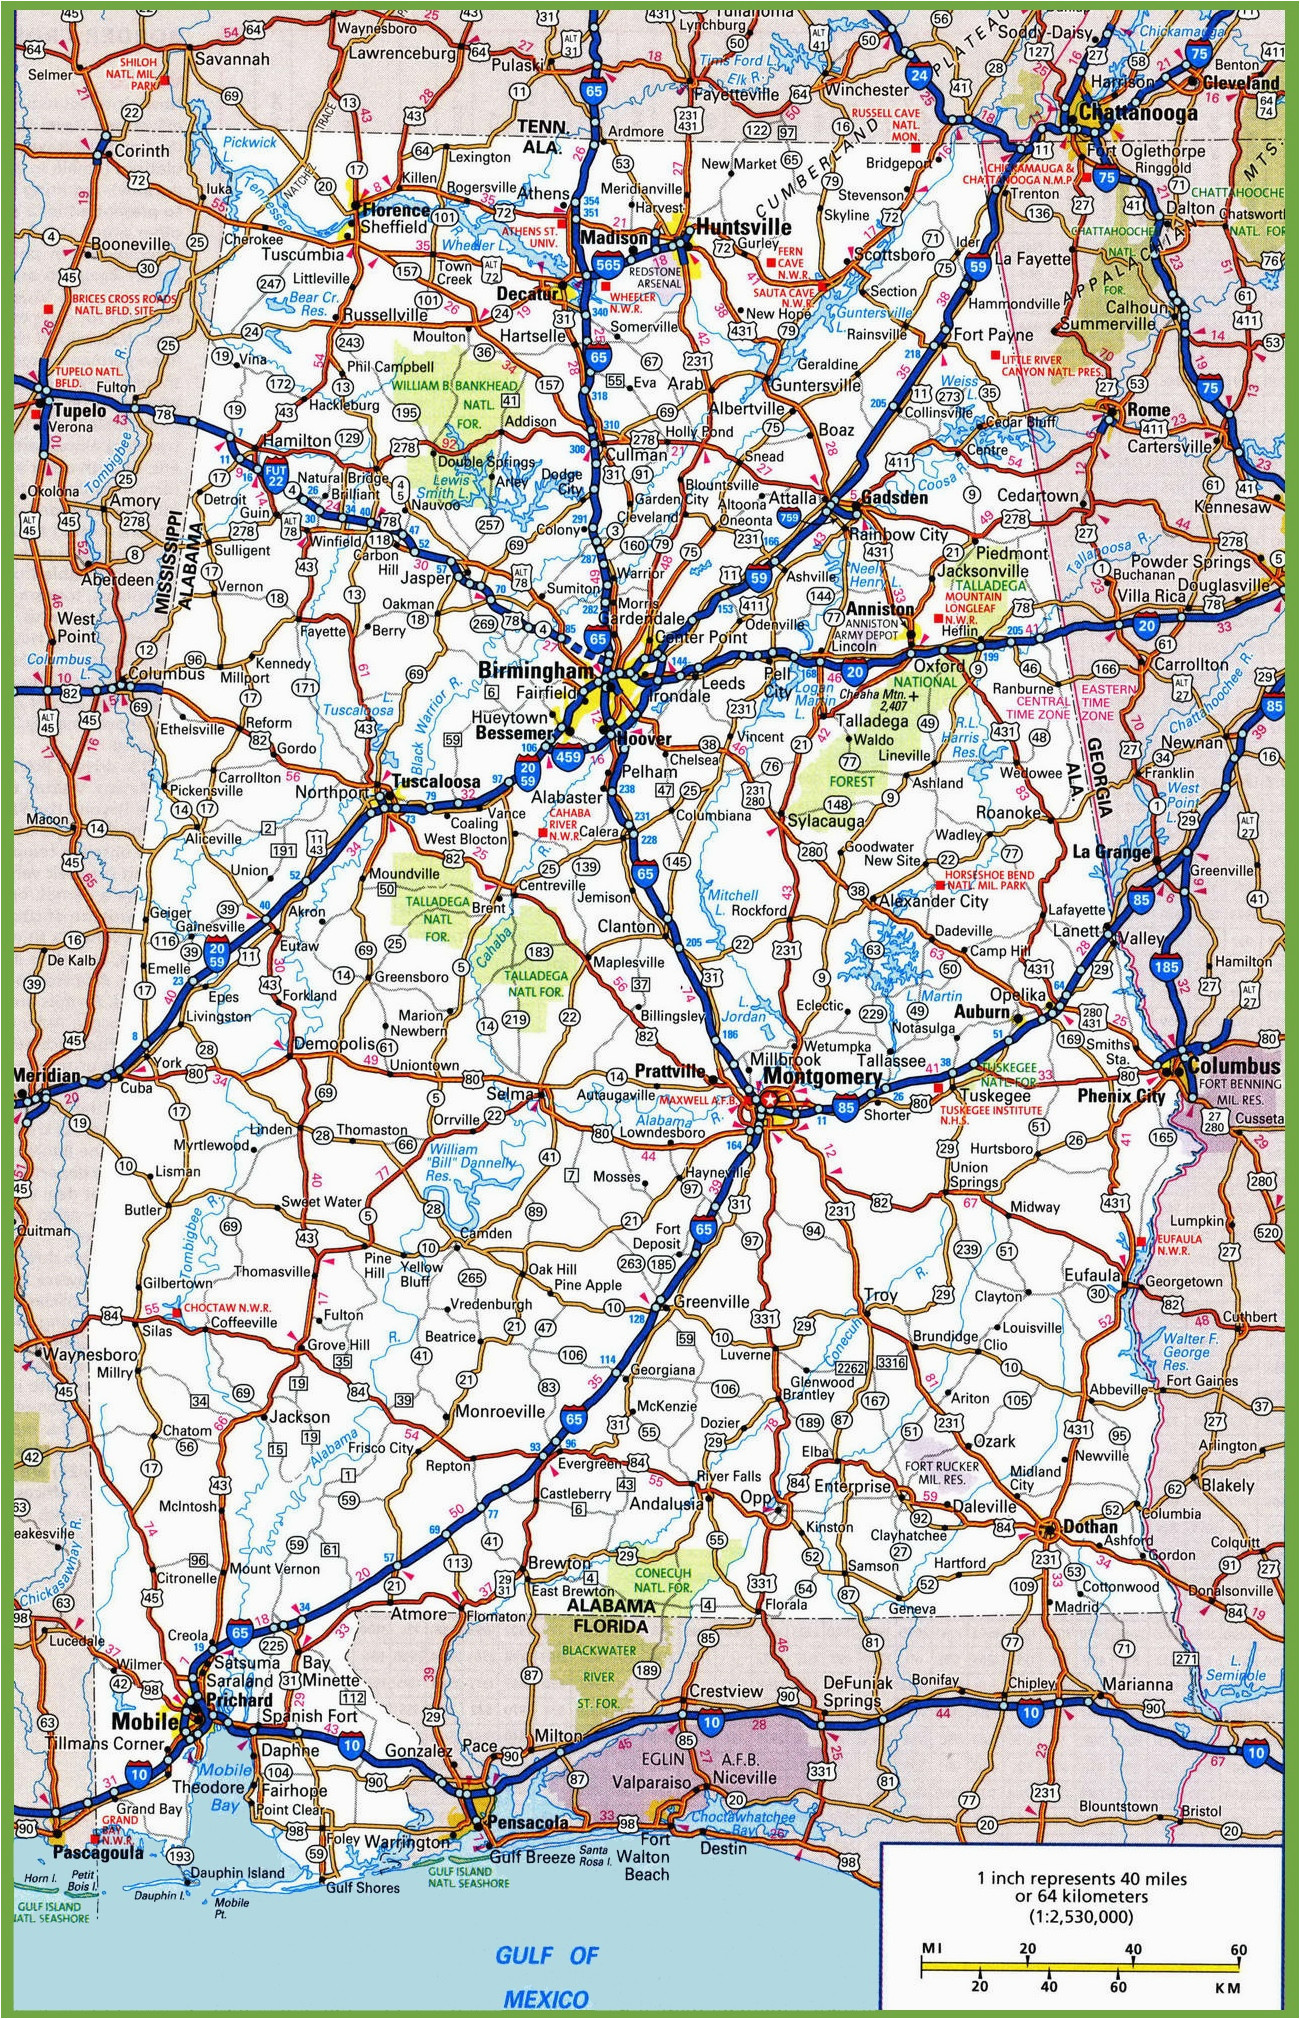 Road Map Of Alabama and Georgia Alabama Road Map